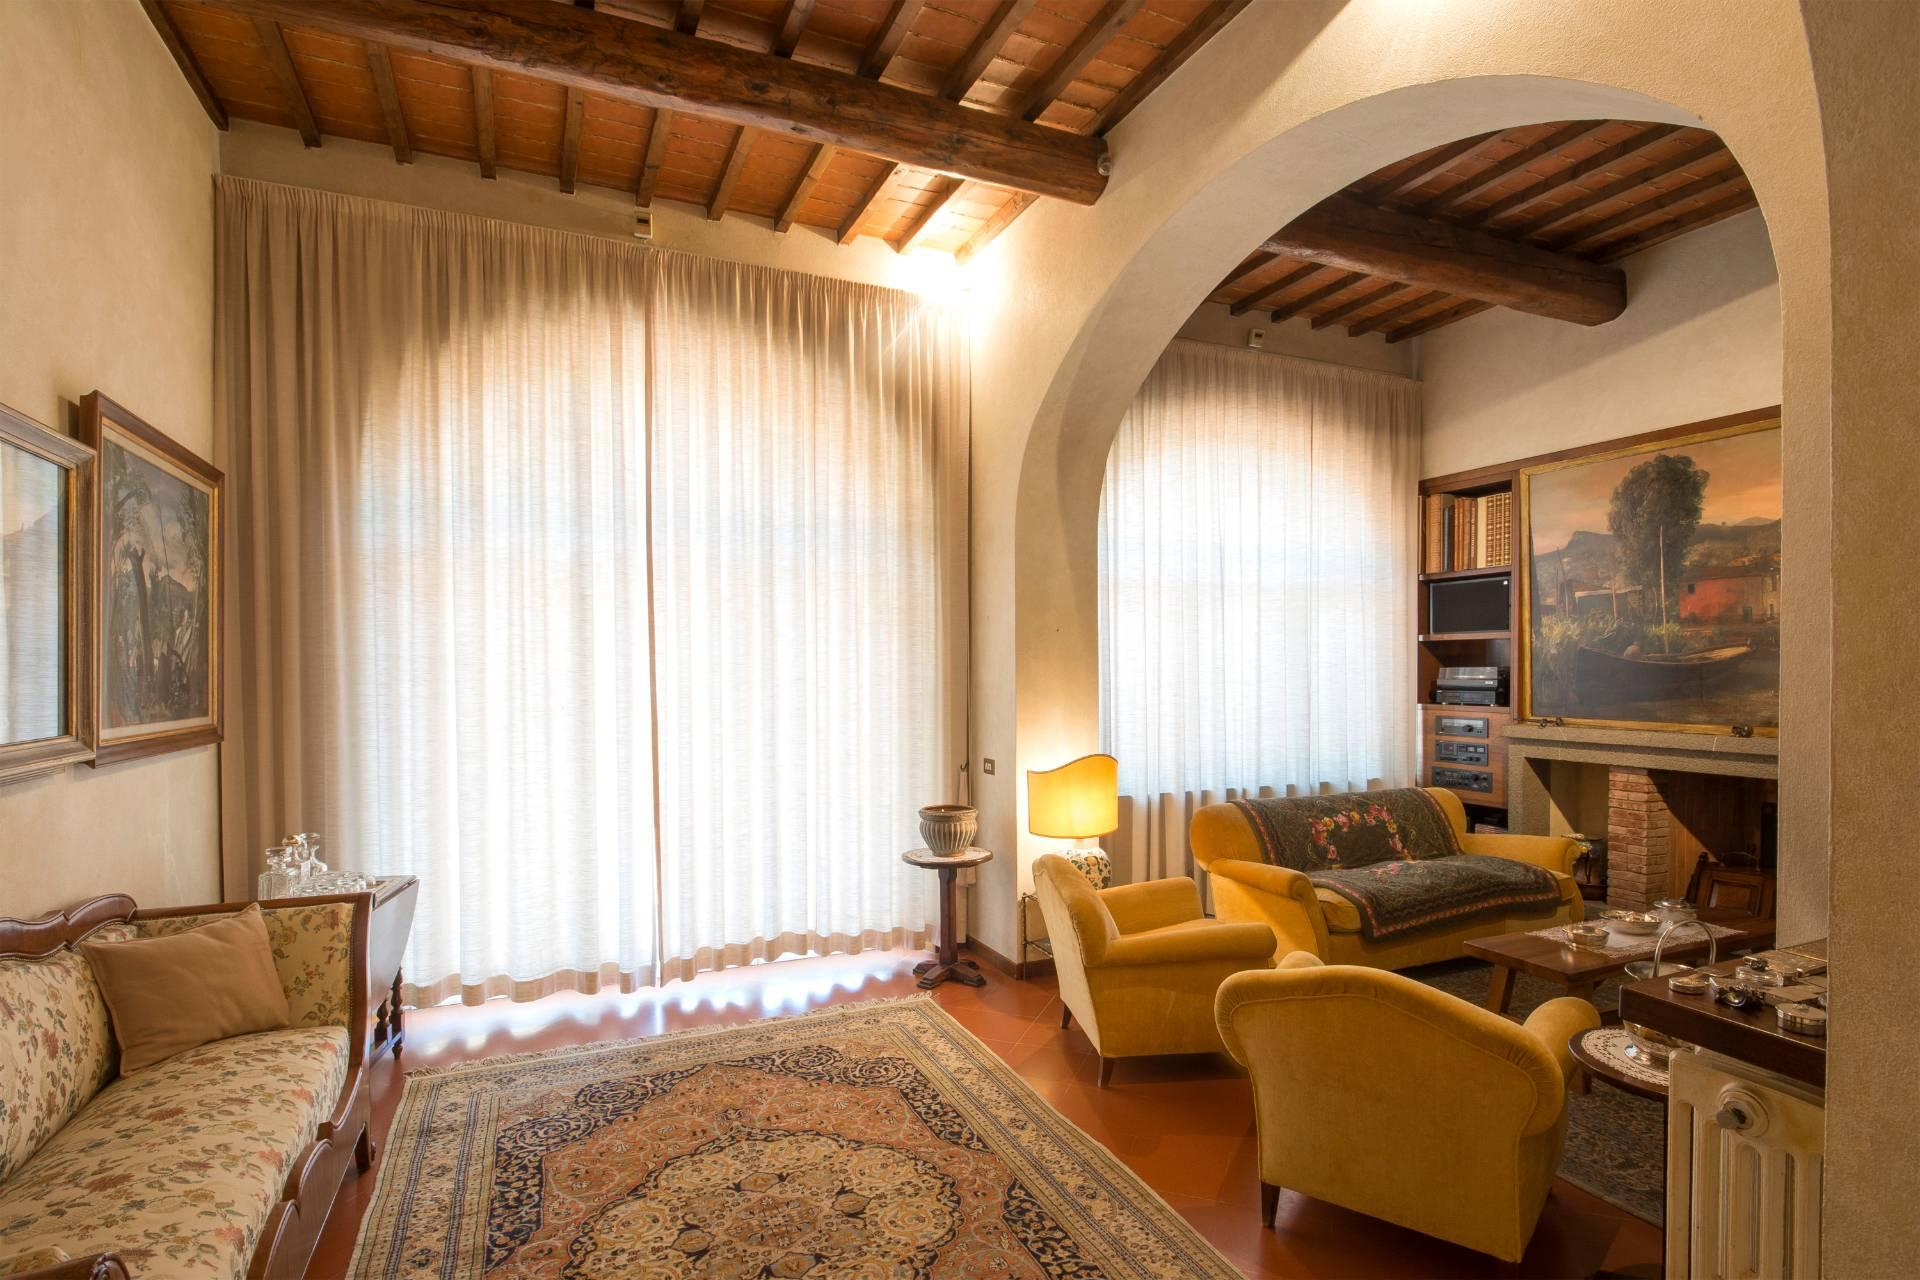 Charming Tuscan villa with views over Florence - 9